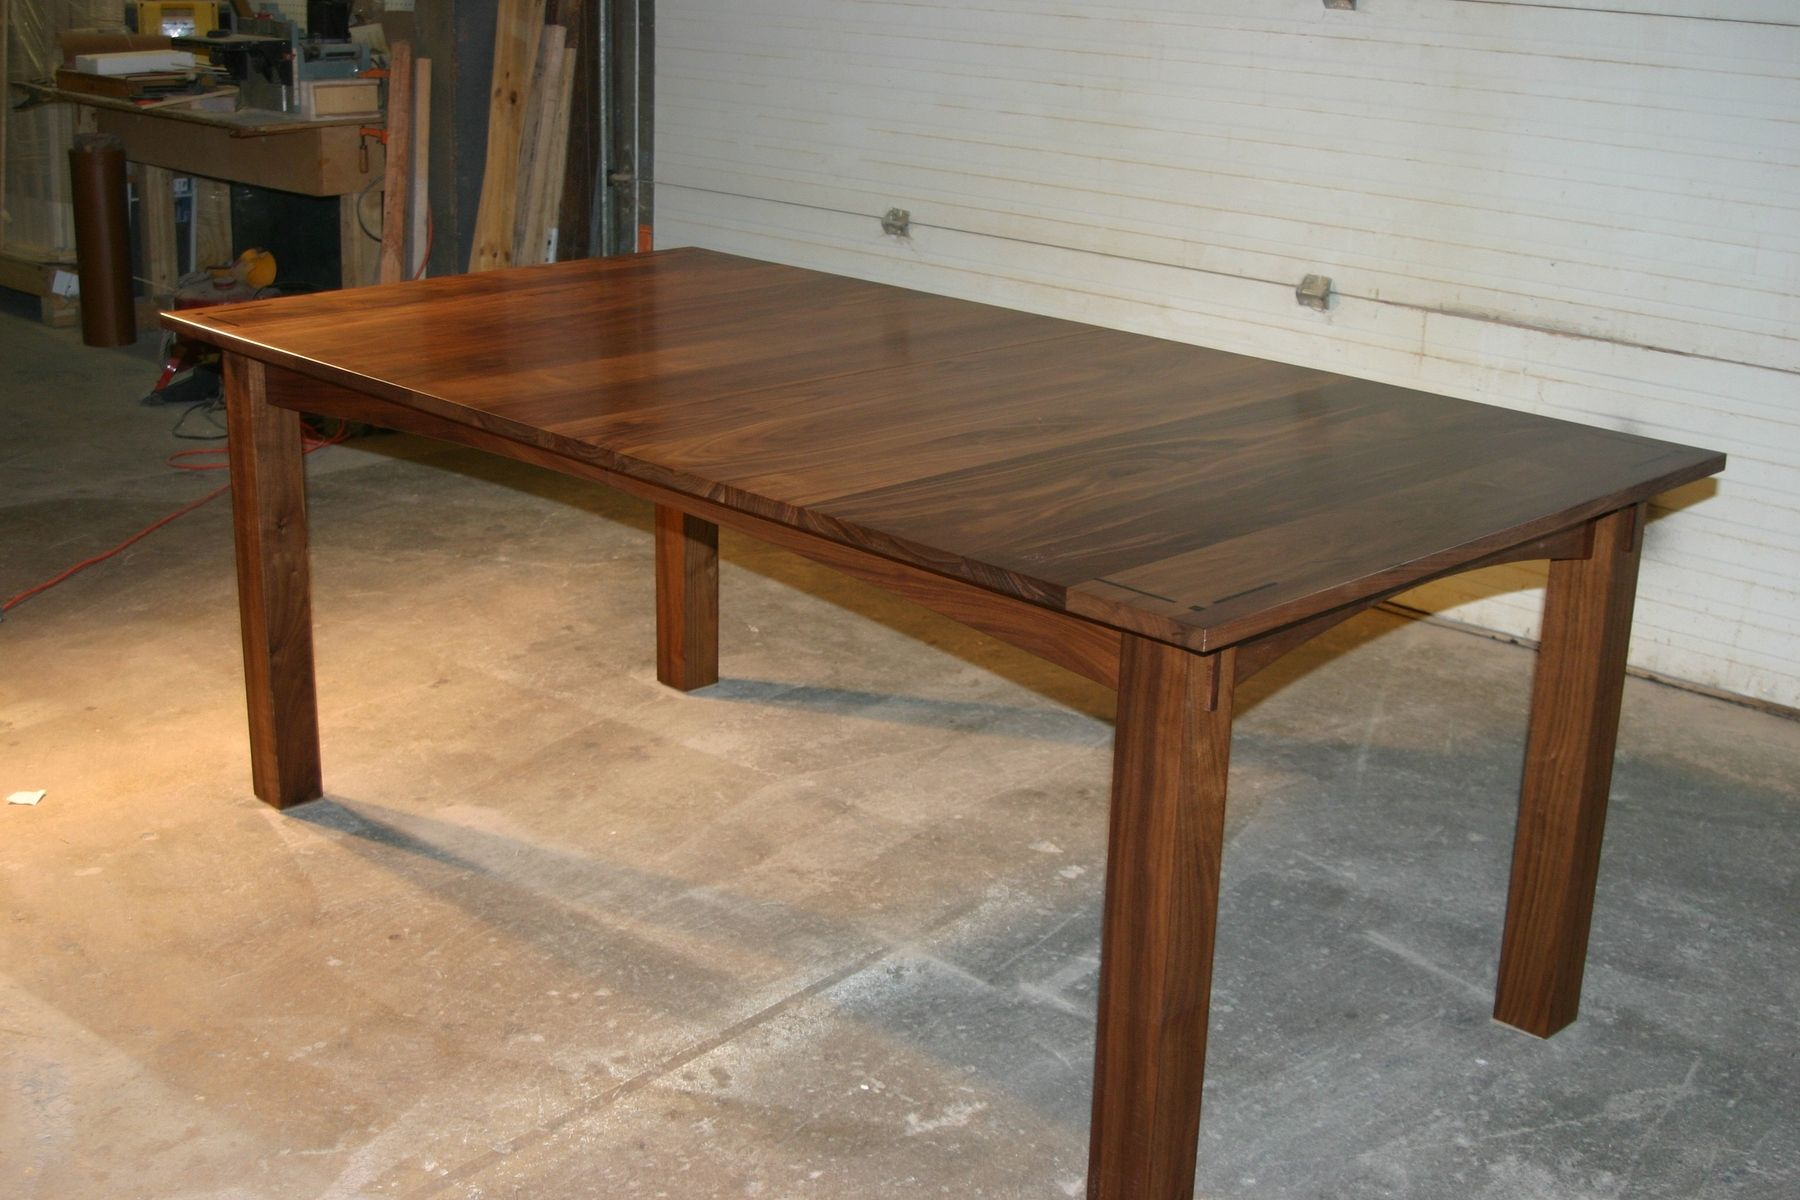 Handmade Walnut Dining Table By Canton Studio CustomMadecom